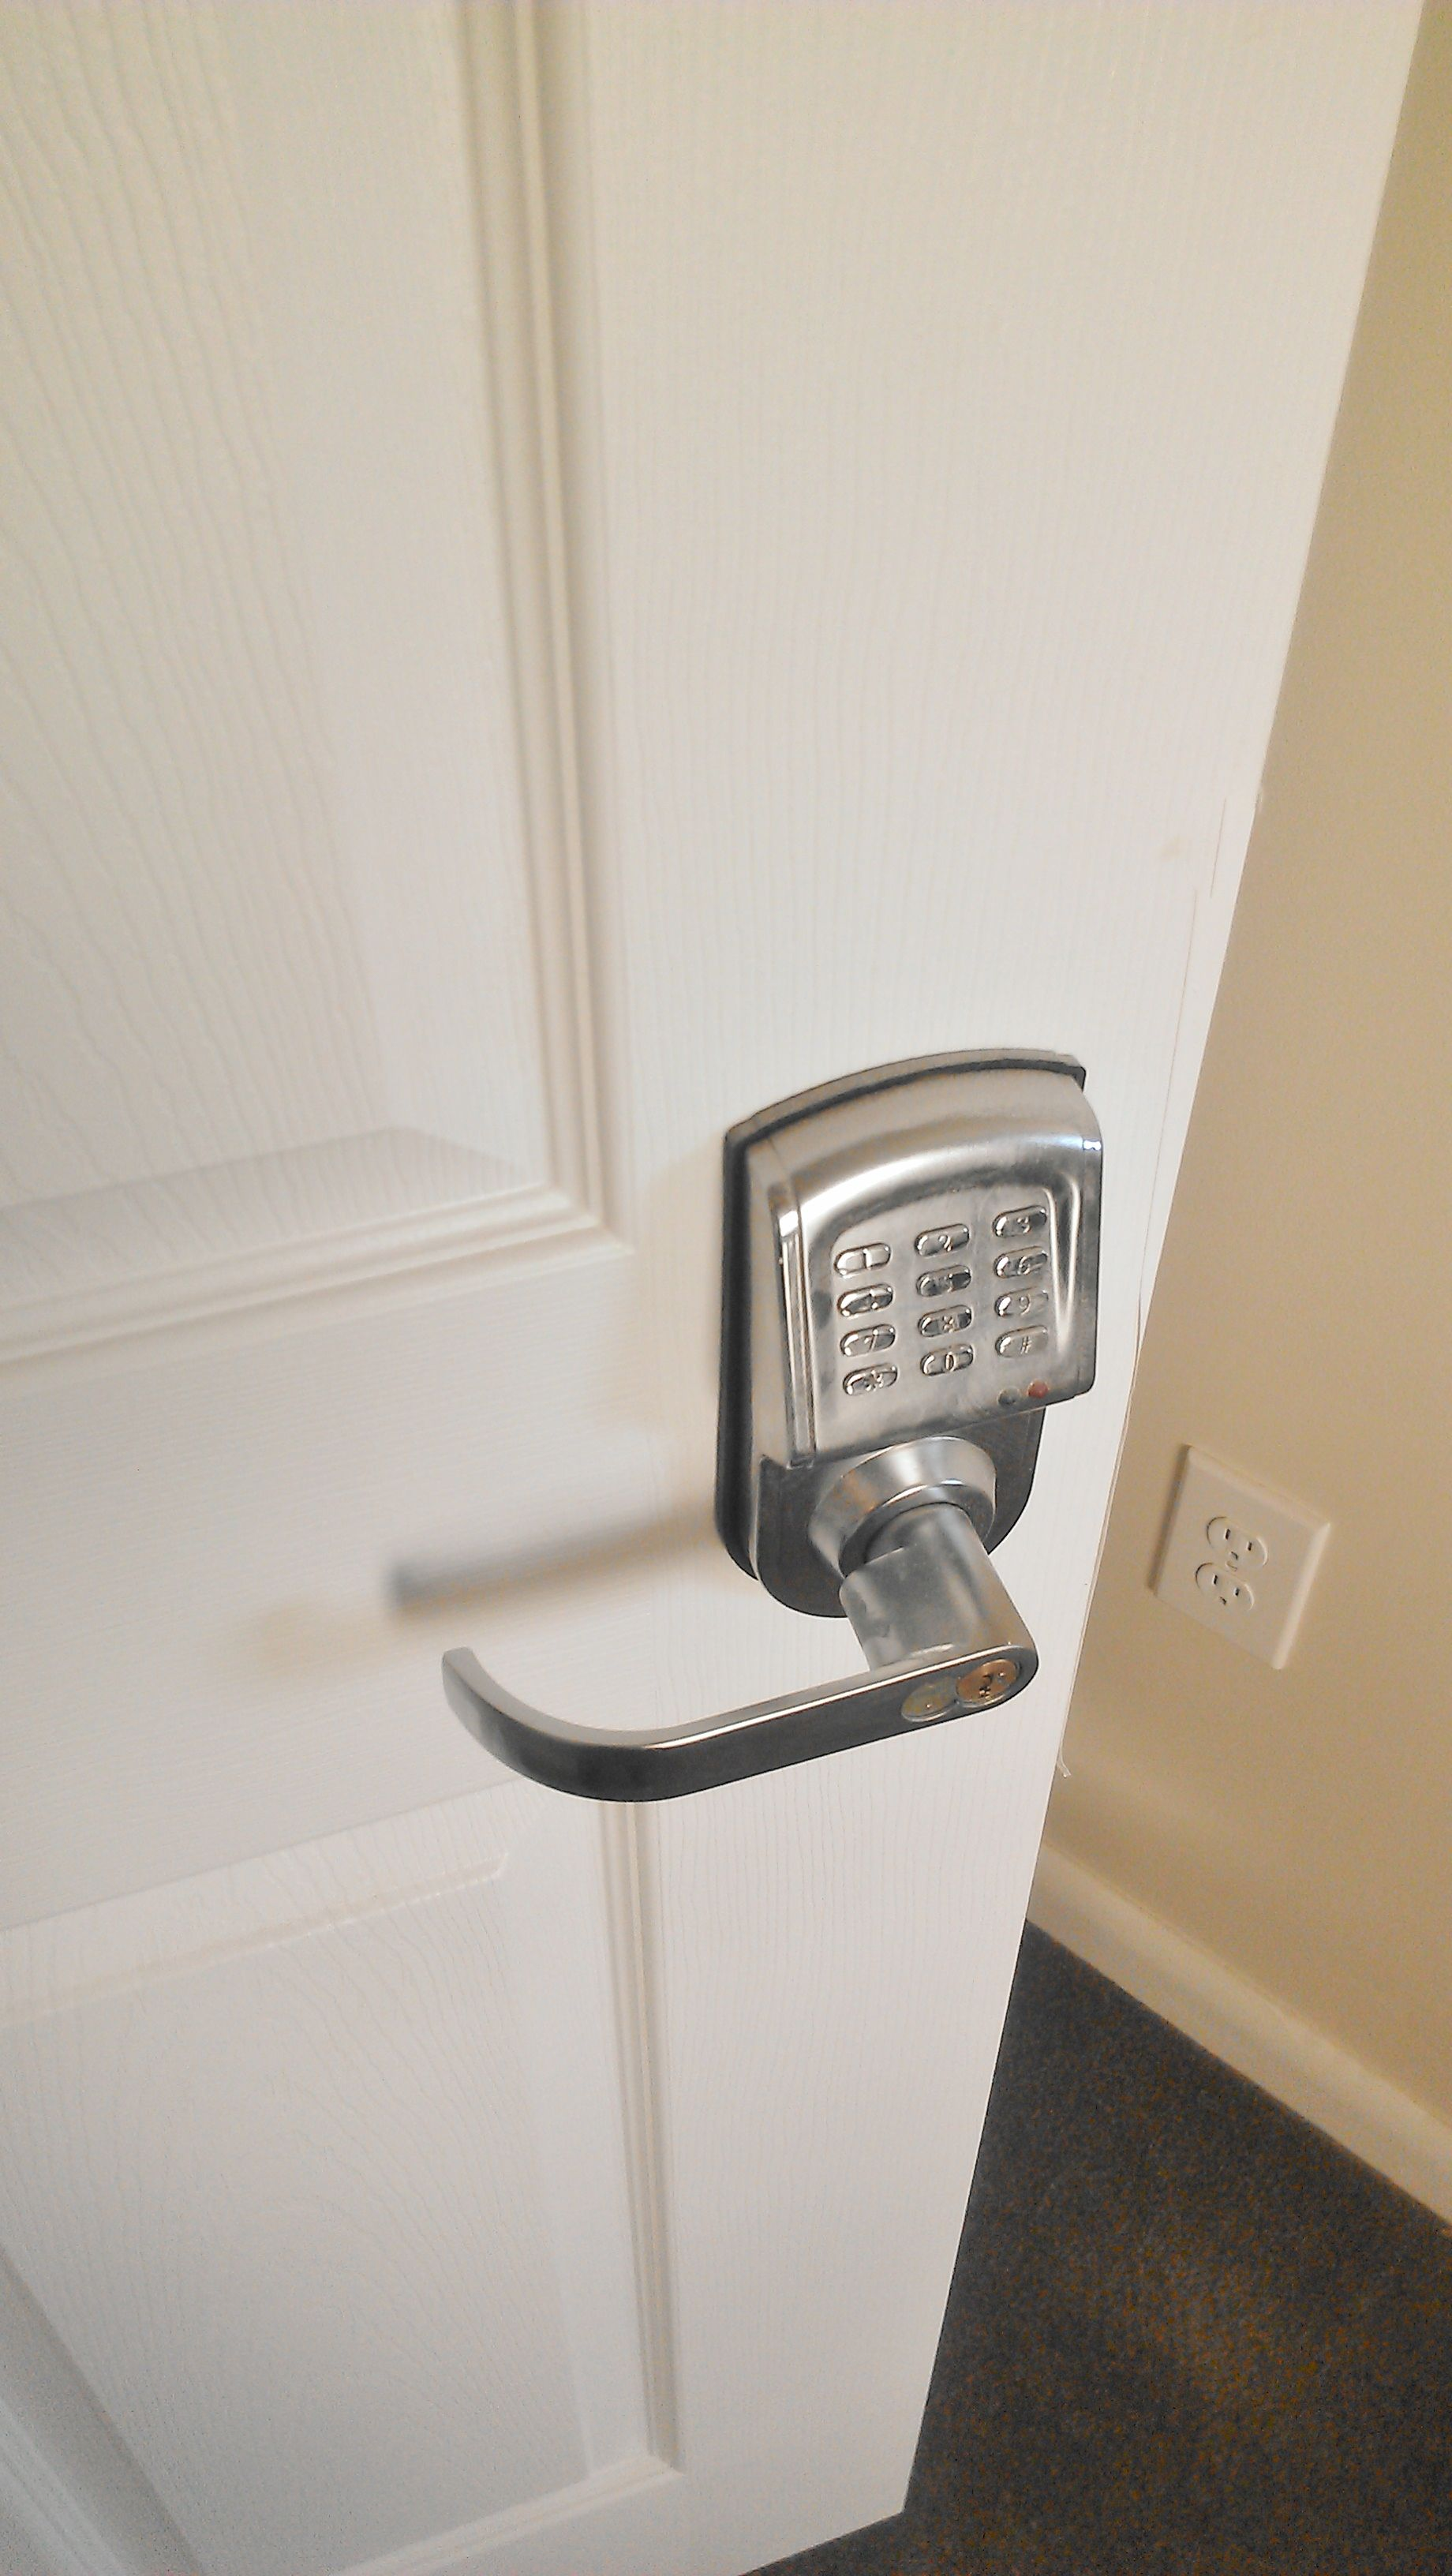 Keypad Locks For Bedroom Doors Check More At Https Homefurnitureone Com Keypad Locks For Bedroom Doors Bedroom Doors Beautiful Bedrooms Door Locks